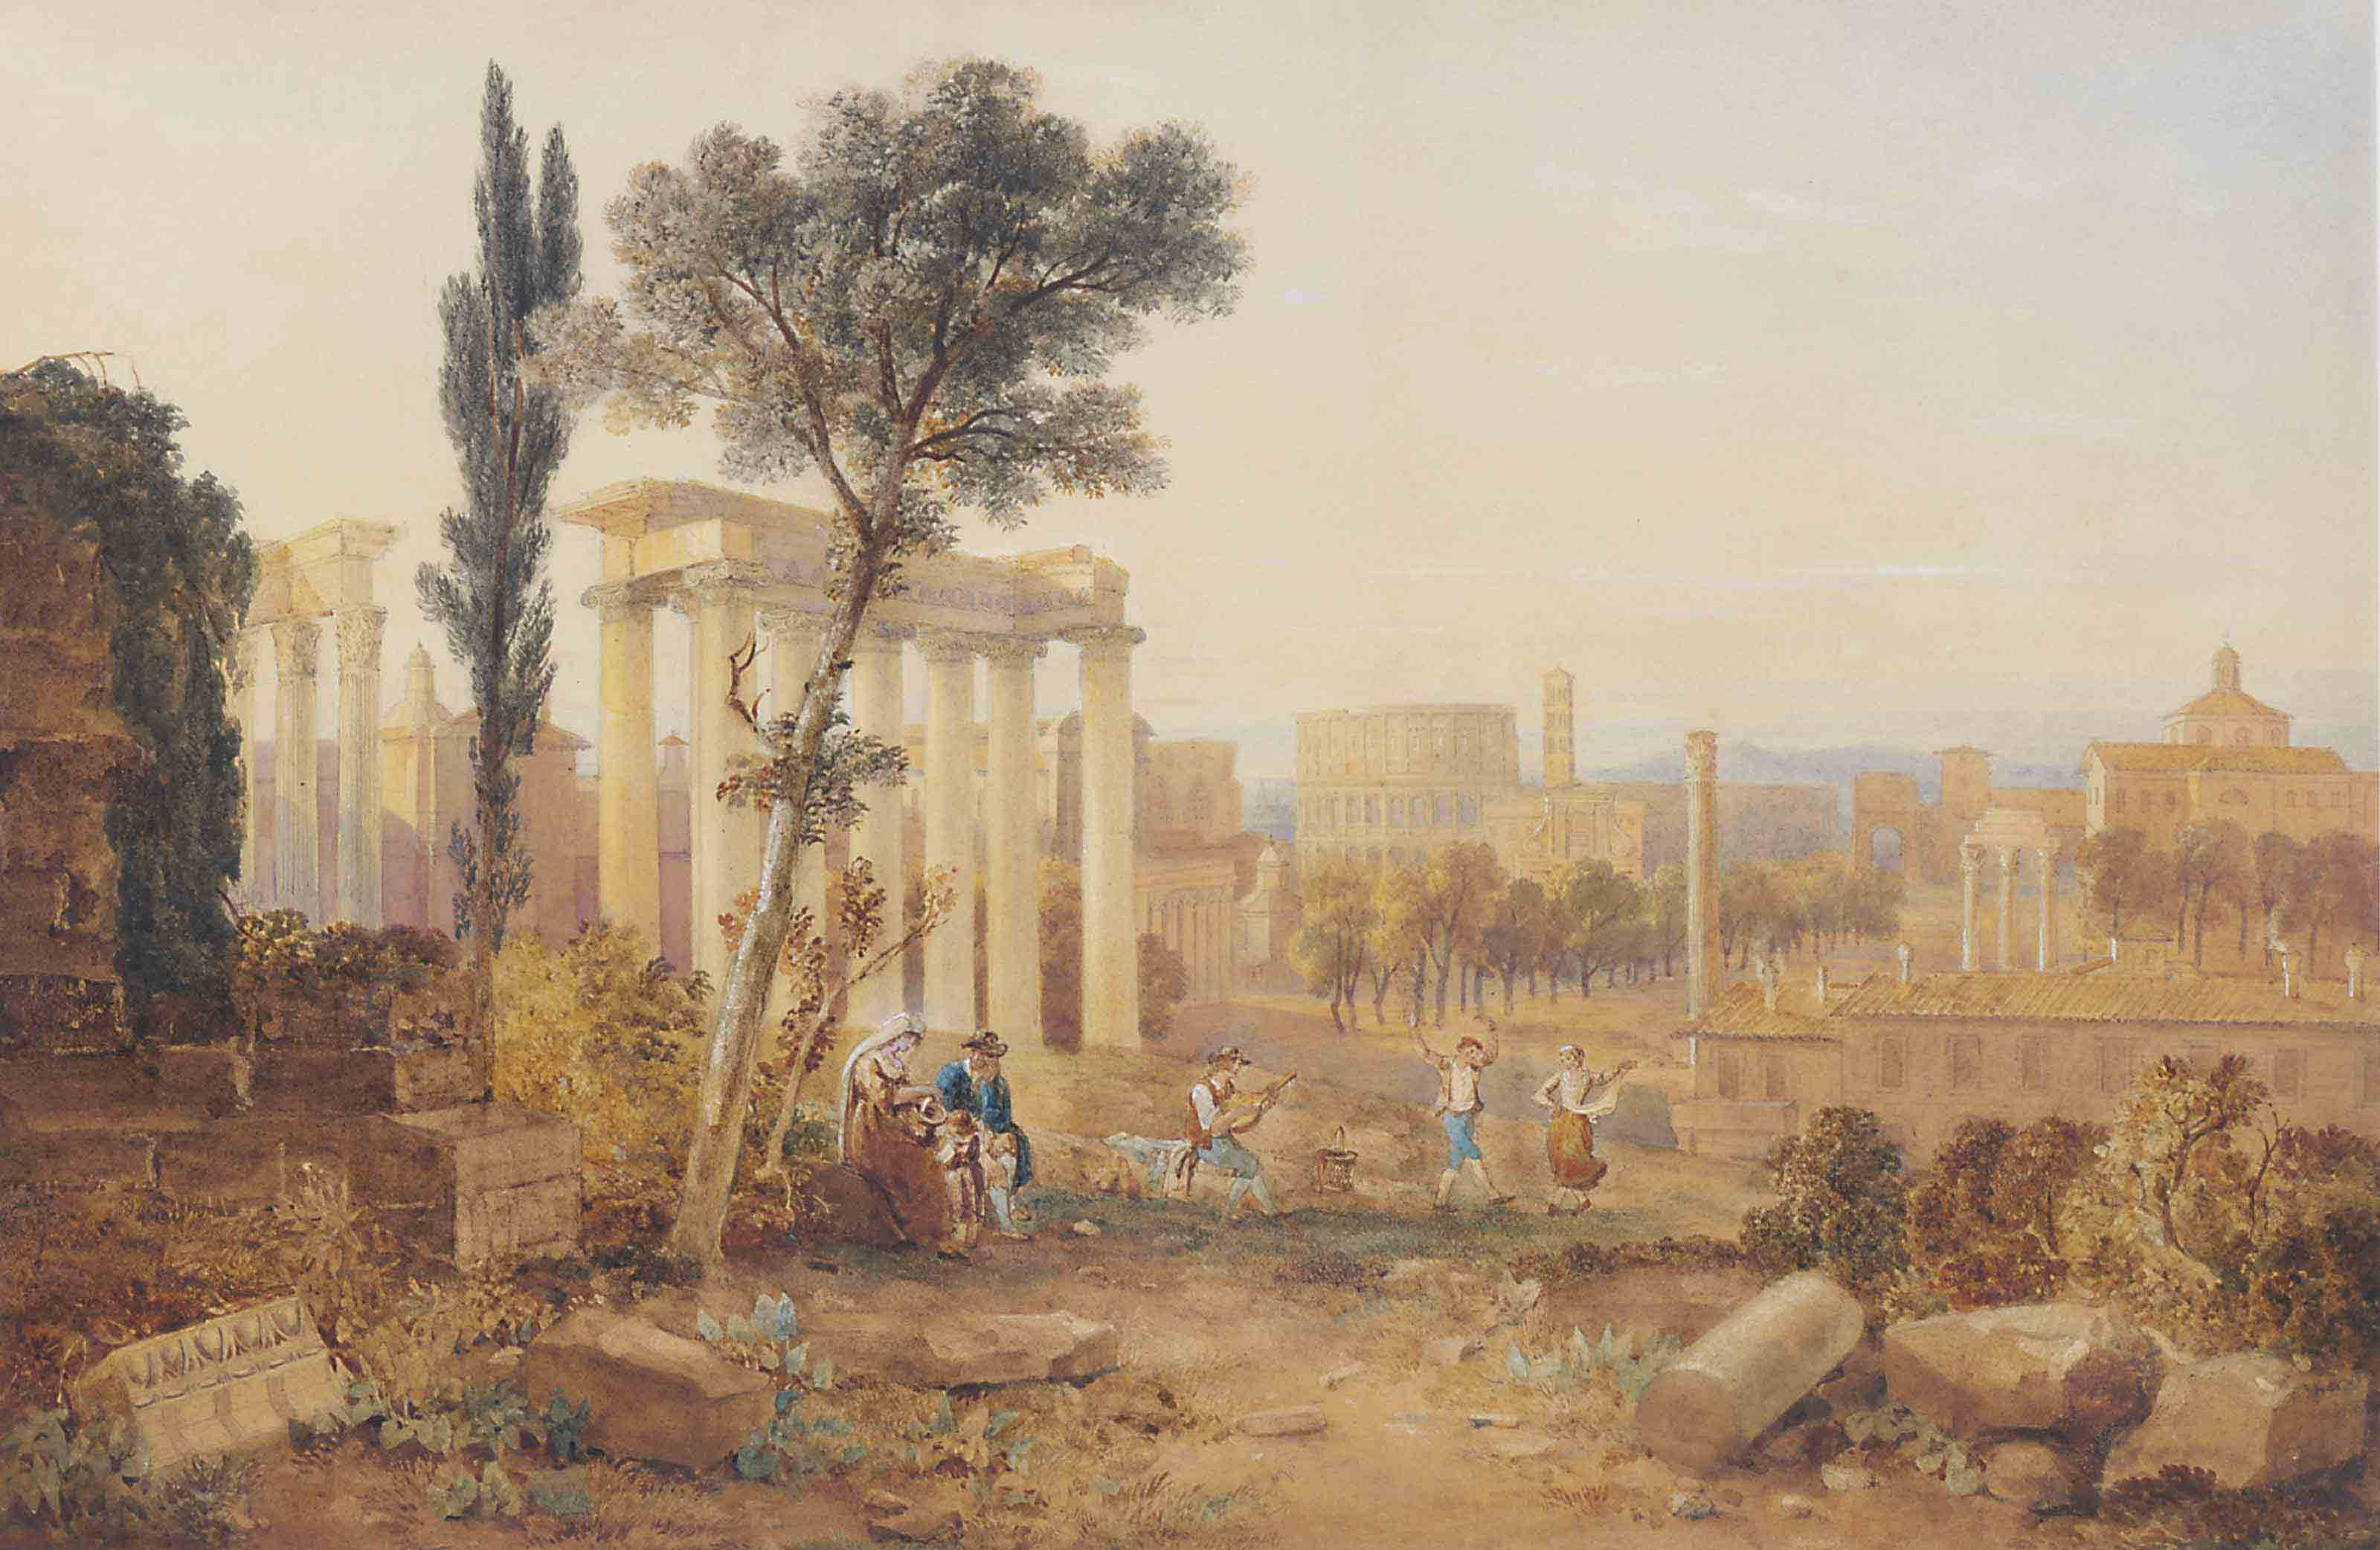 The Forum, Rome, with Italian peasants dancing in the foreground